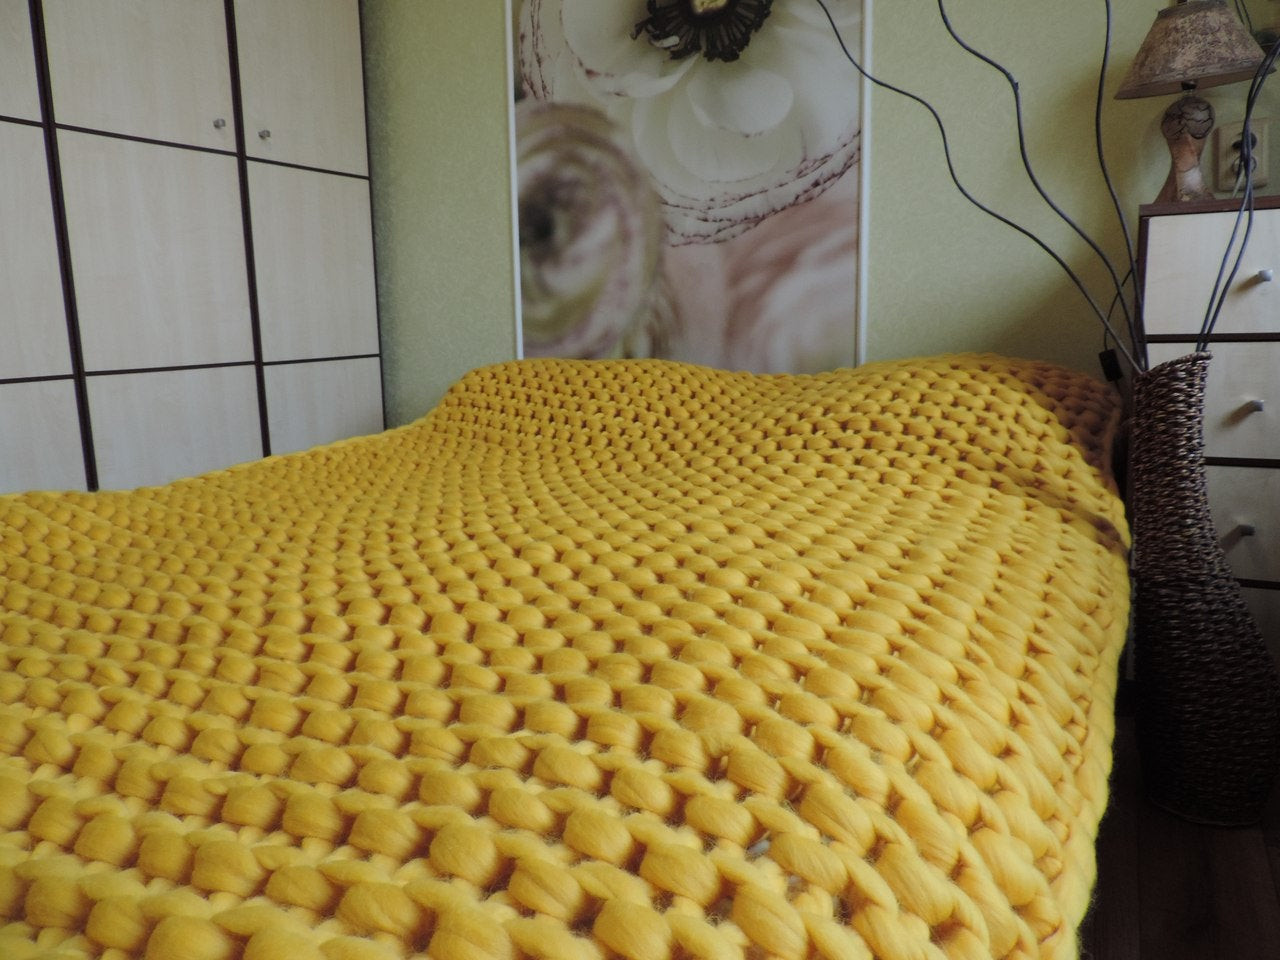 Chunky Wool Blanket Fresh Promo Price Chunky Knit Blanket Knitted Blanket Wool Of Incredible 43 Pictures Chunky Wool Blanket